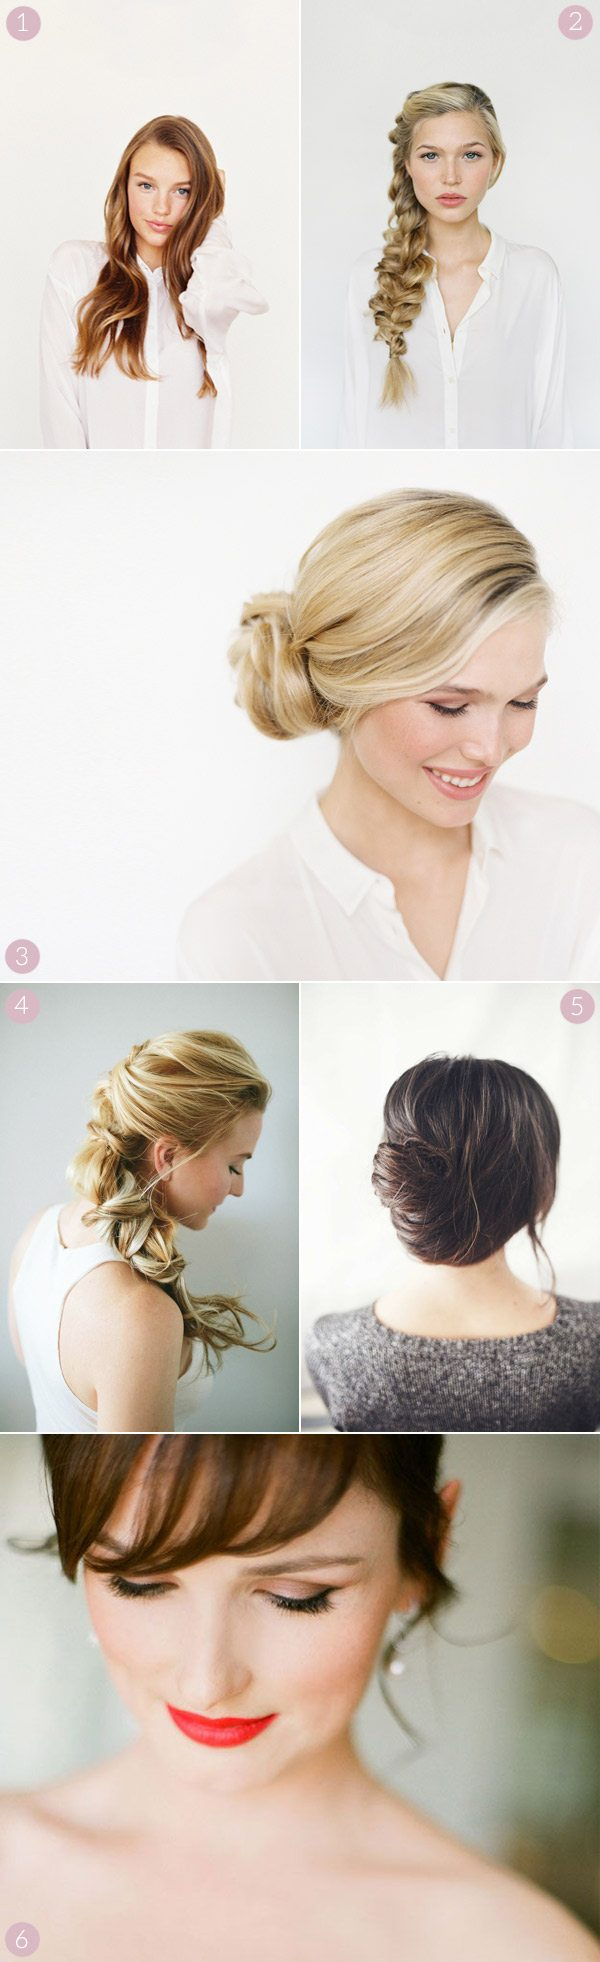 6 Pretty Wedding Hair and Makeup Looks